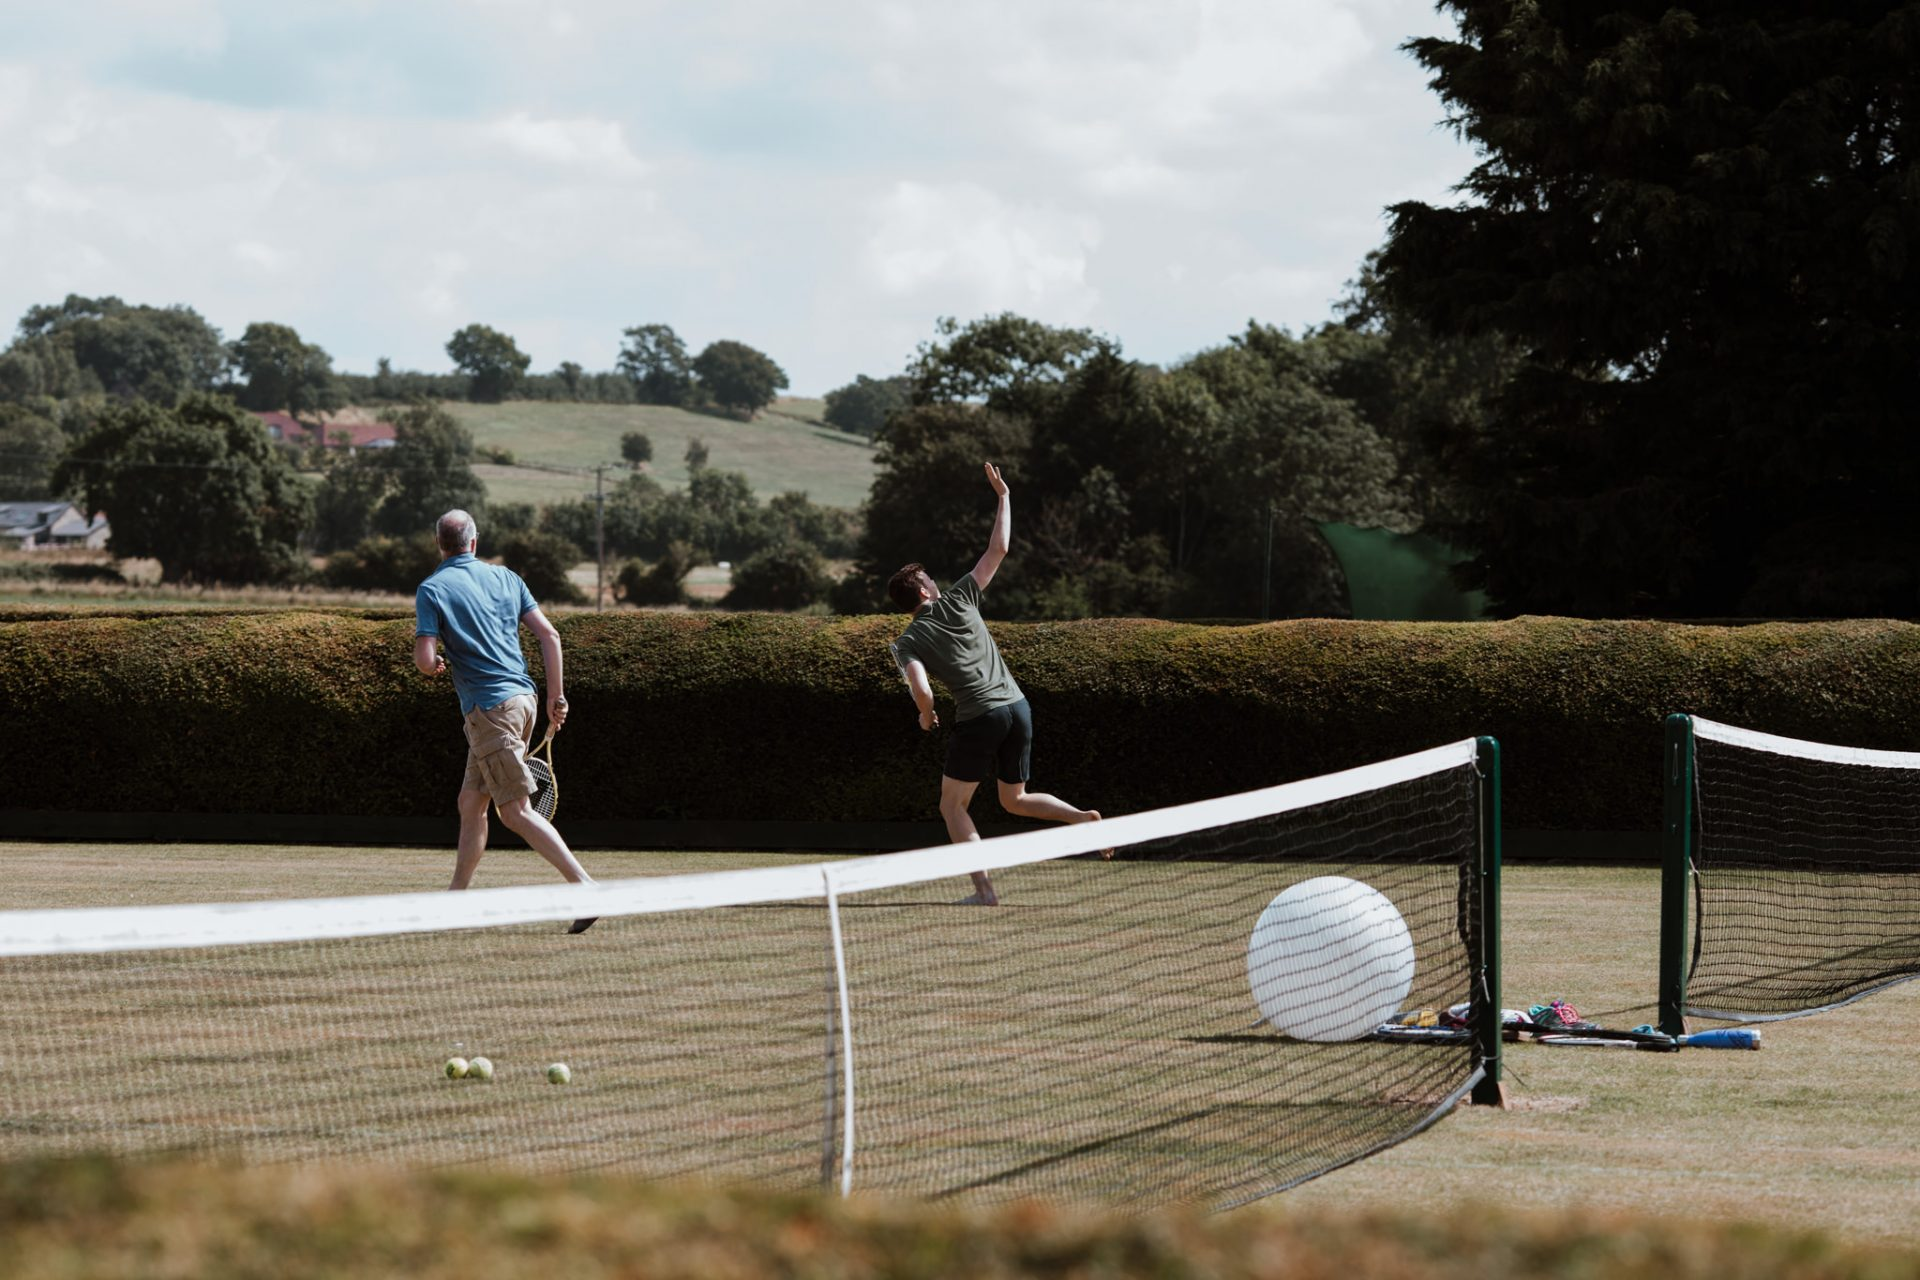 guests playing tennis